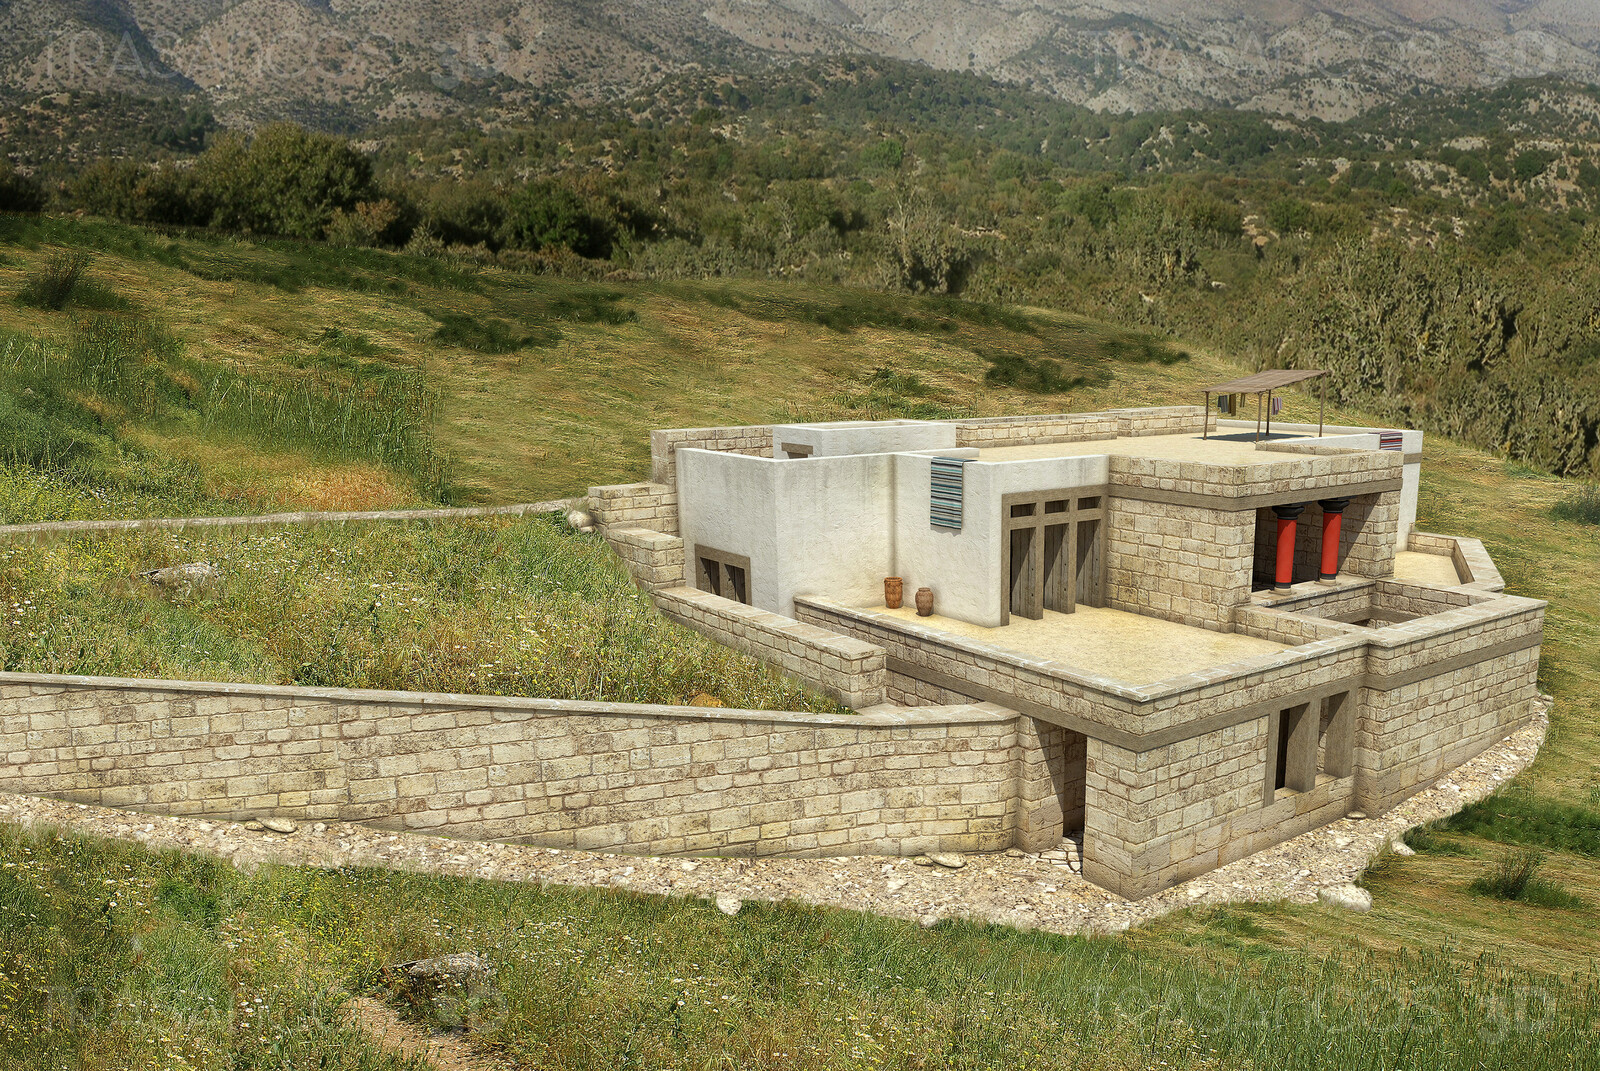 View of the Royal Villa in Cnossos. Modeled in collaboration with: - Andrés Armesto